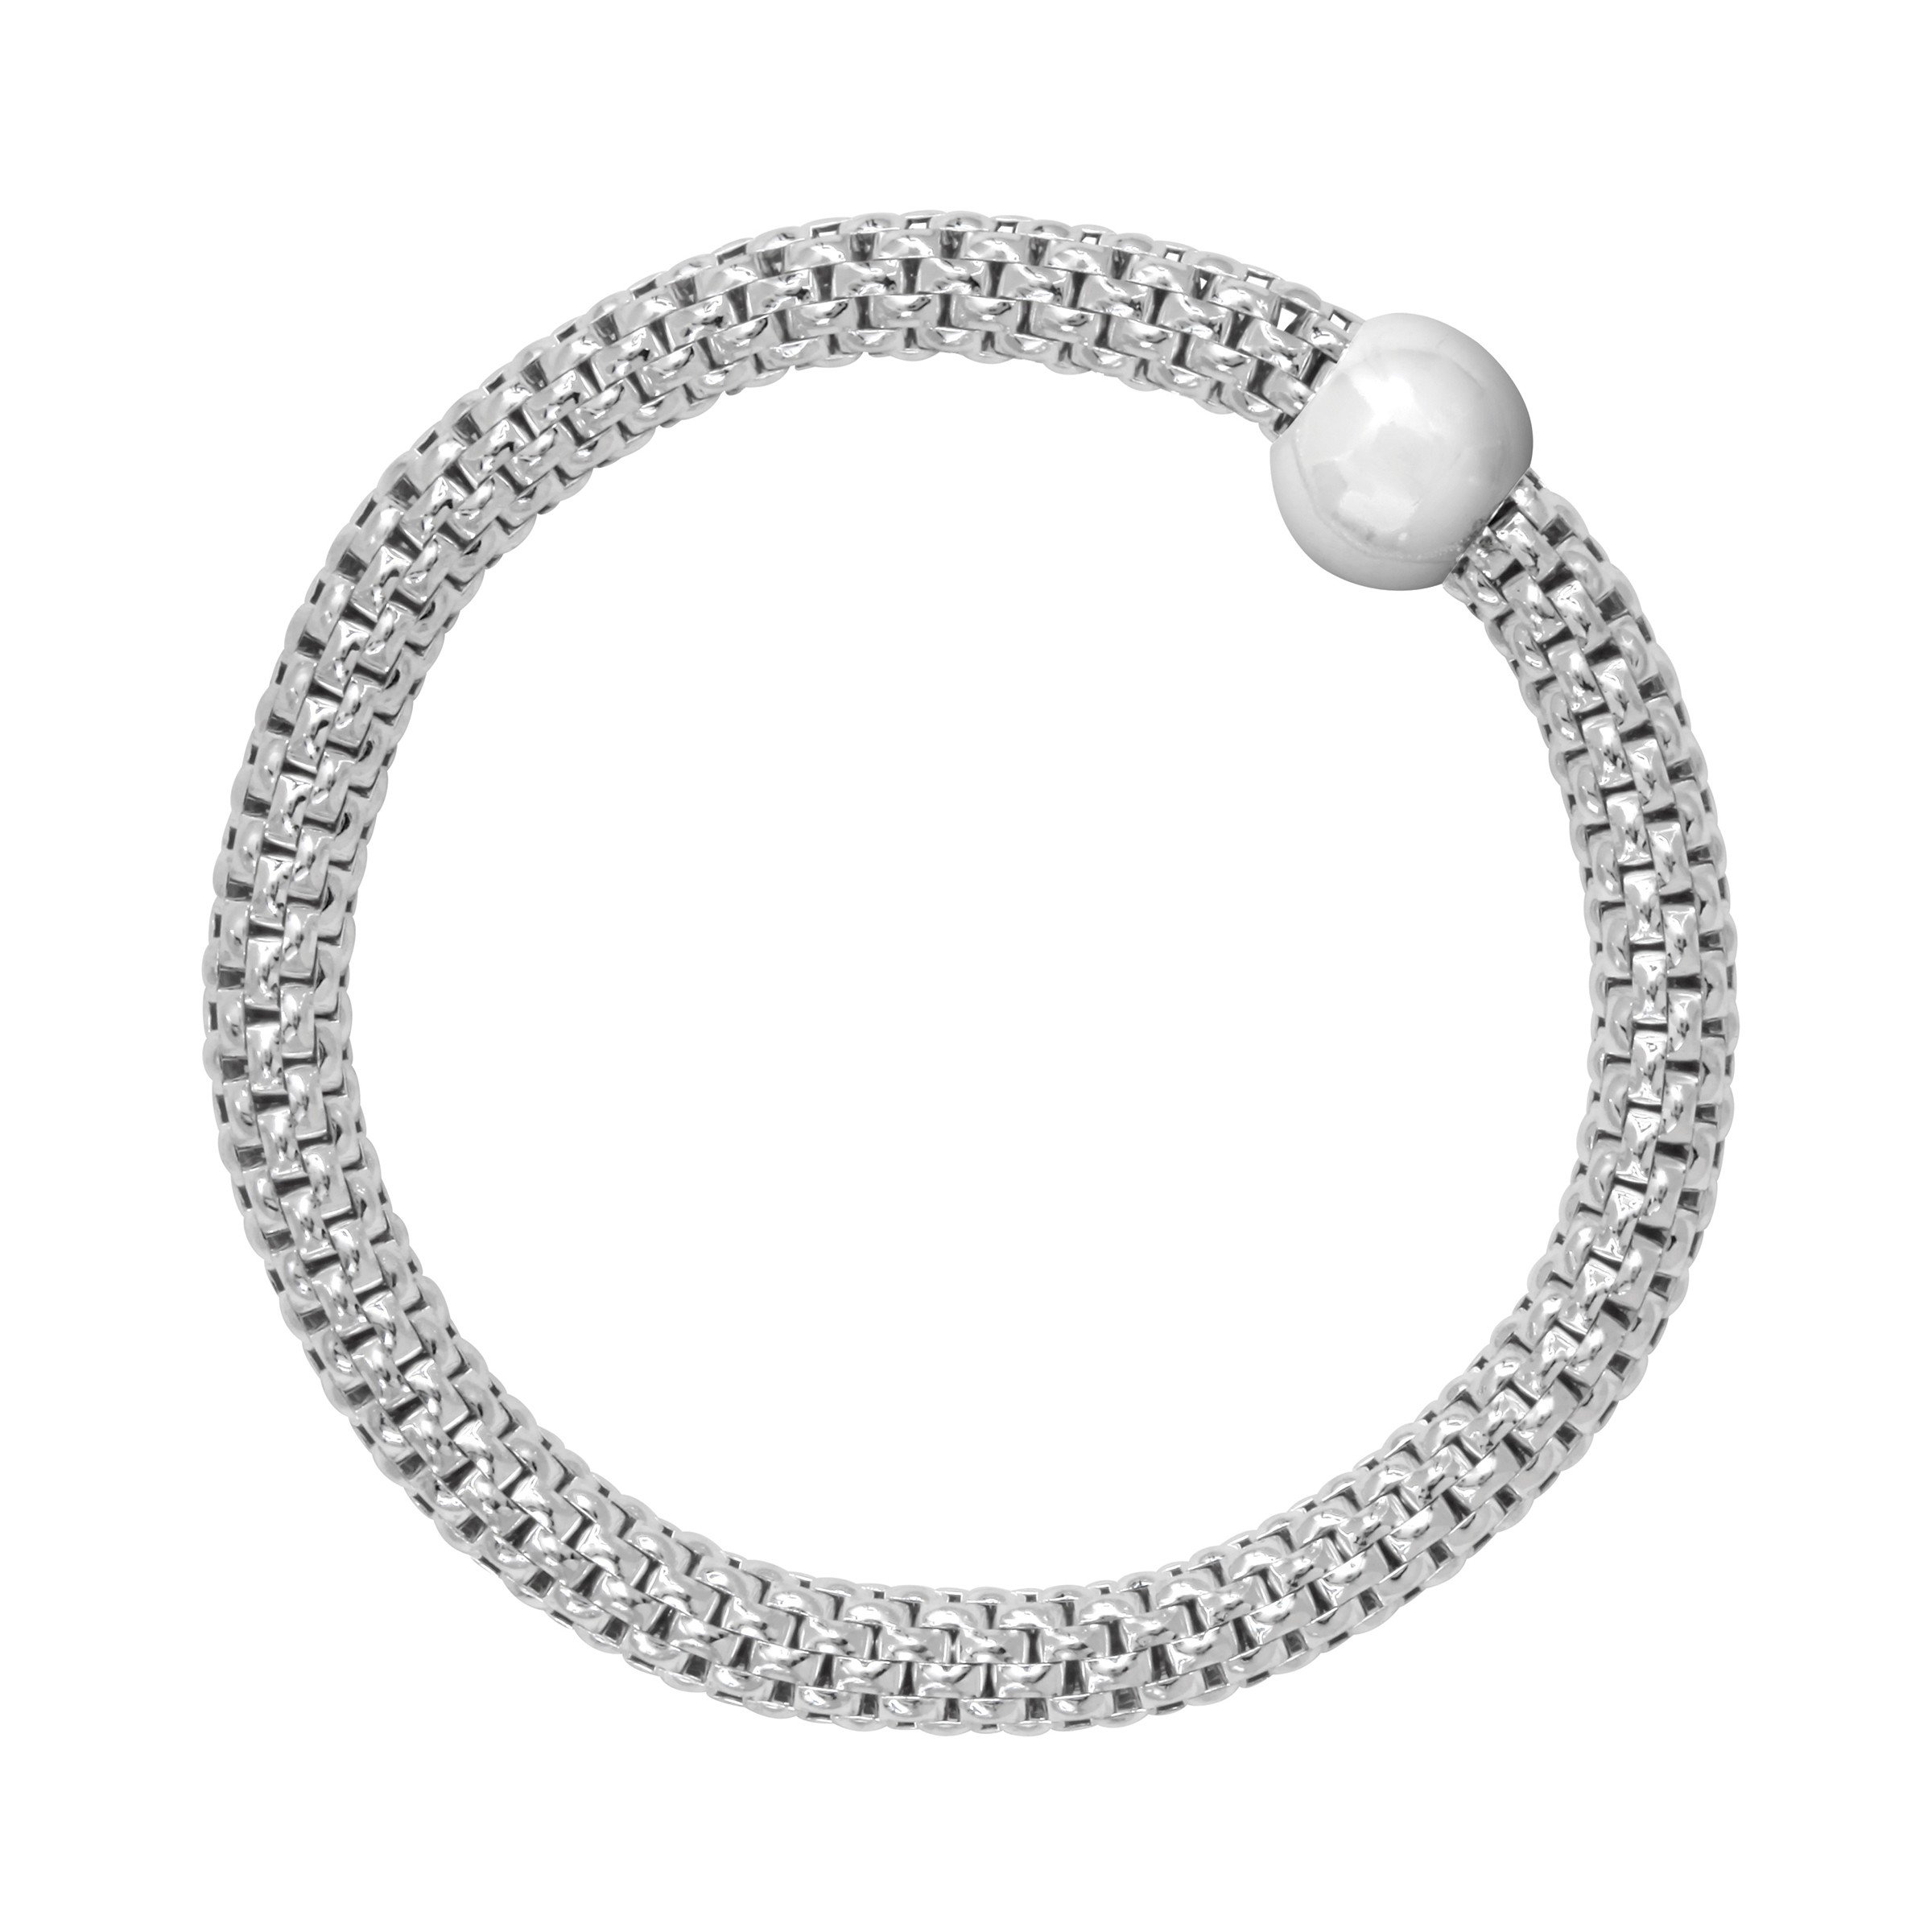 Silpada 'Chic' Sterling Silver Stretch Bracelet, 7-7.75'' by Silpada